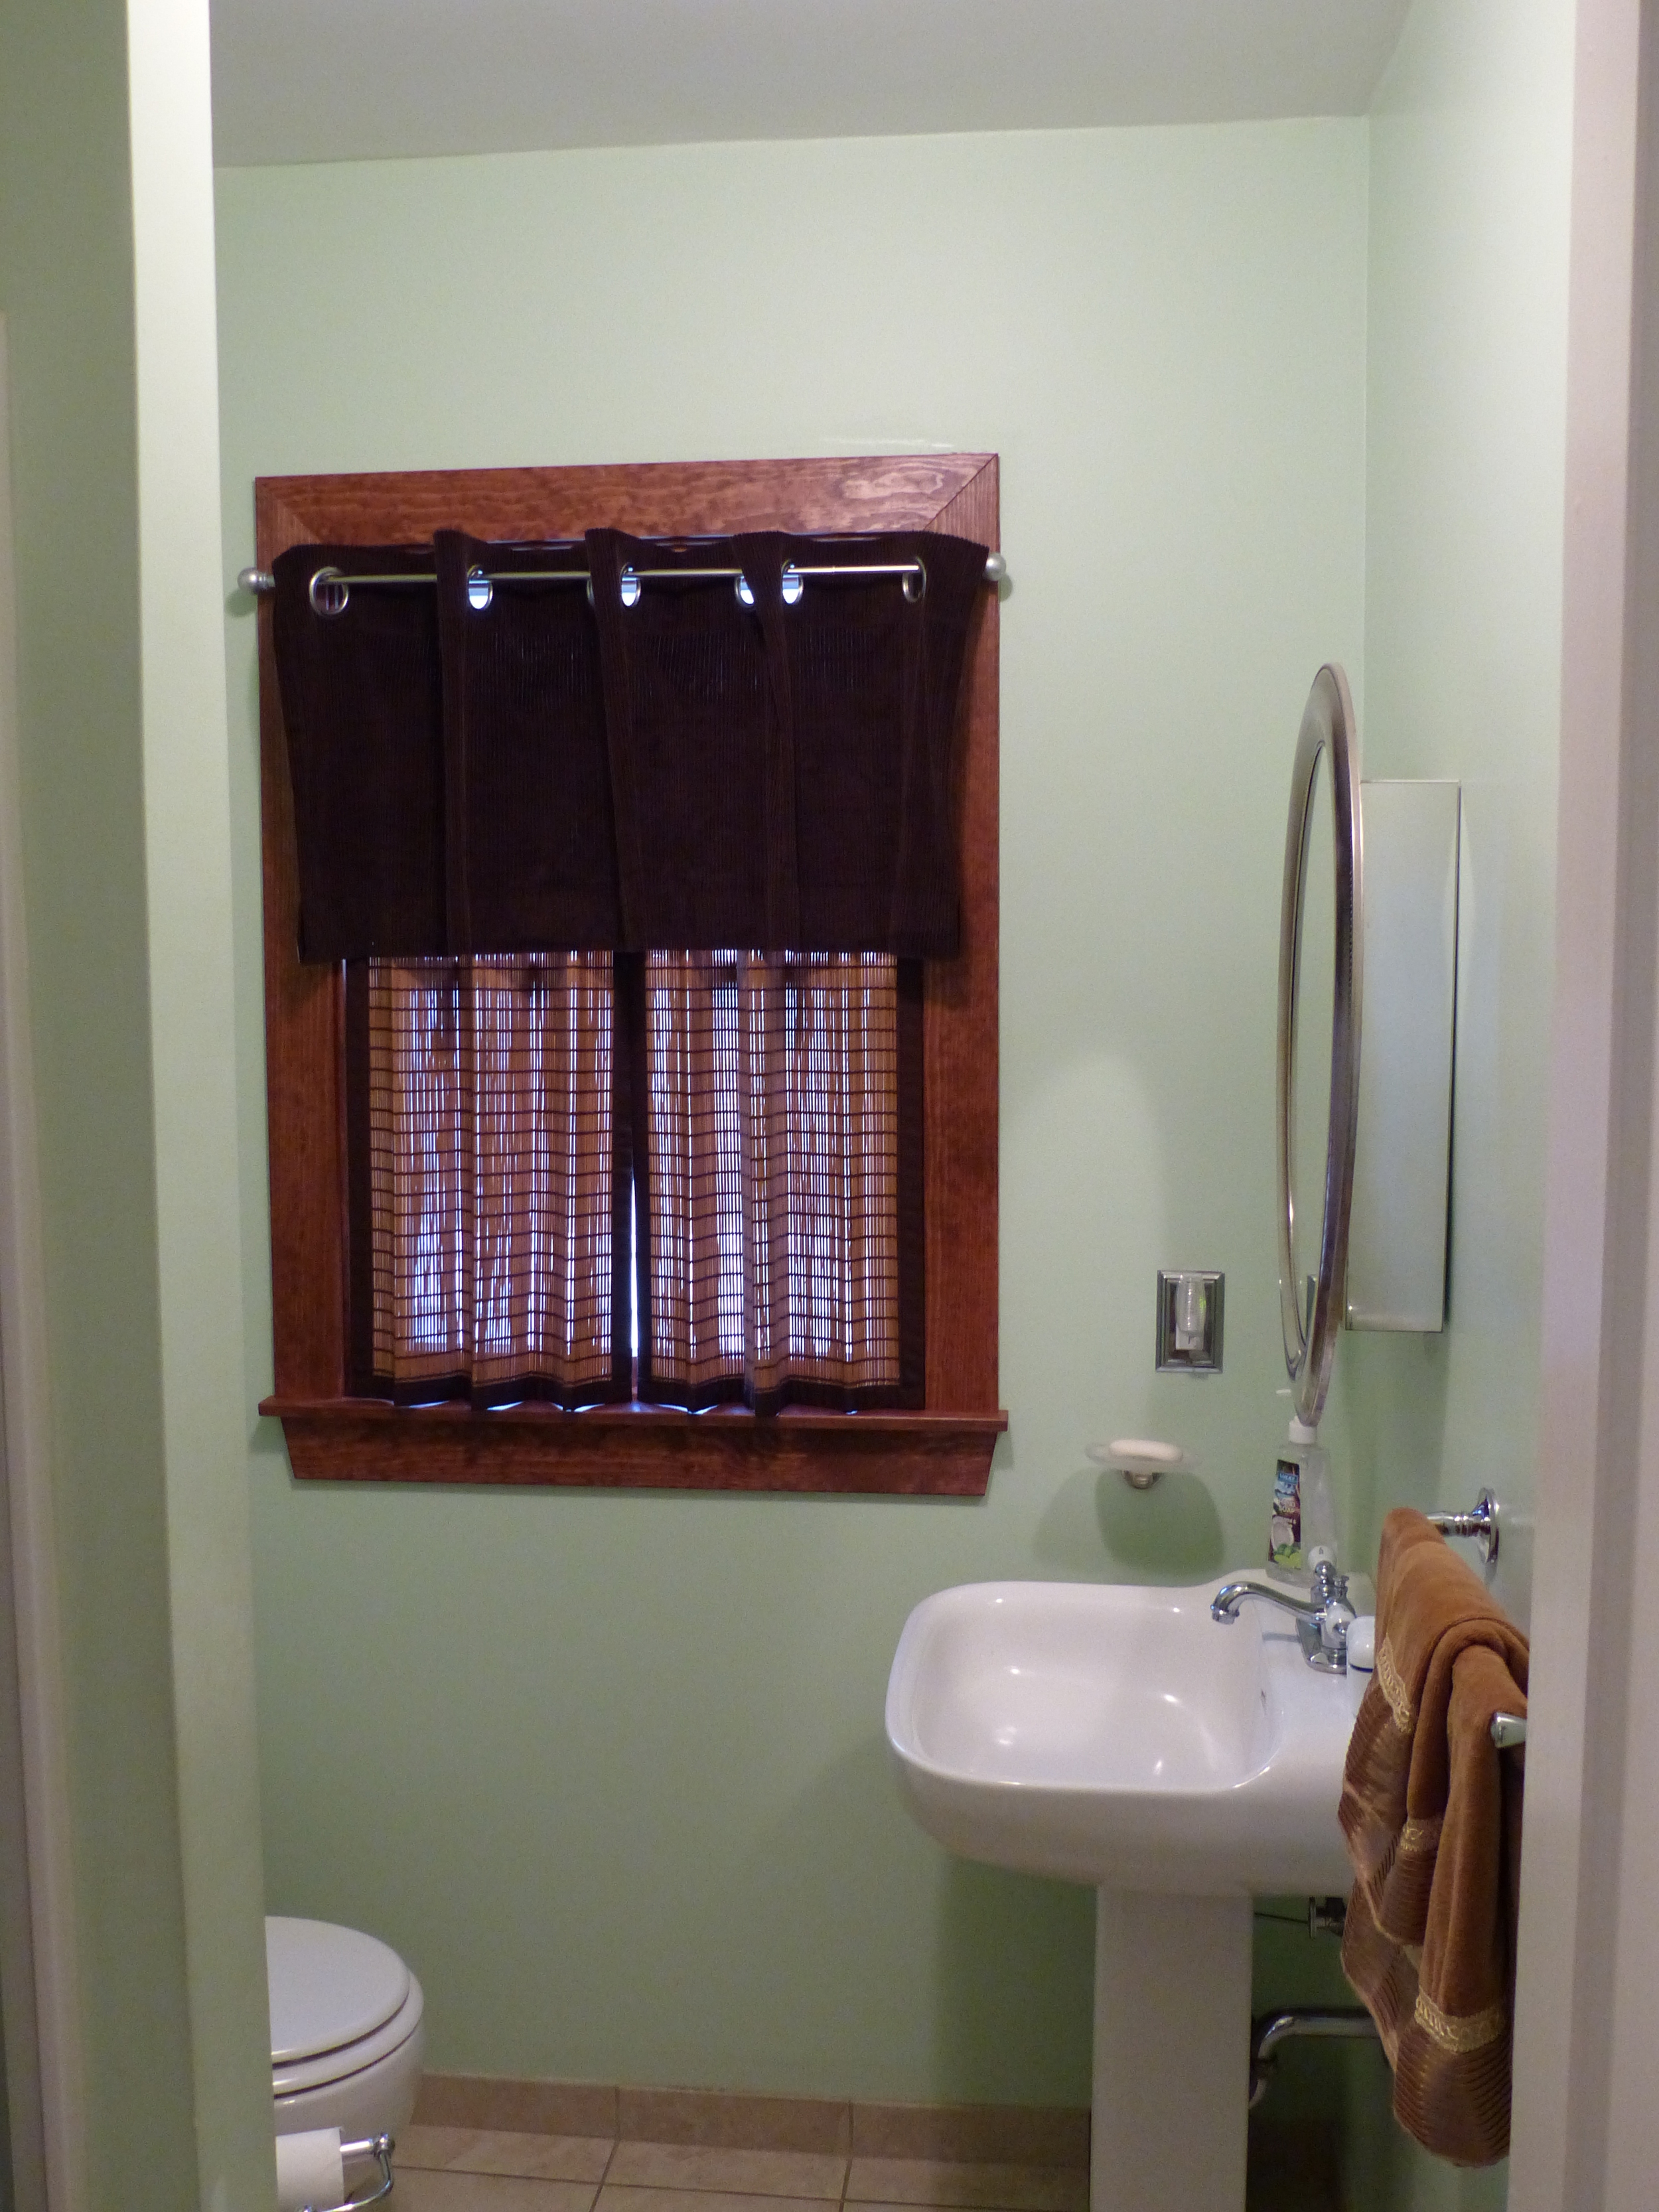 Remodel - bathroom from tub to shower stall.jpg